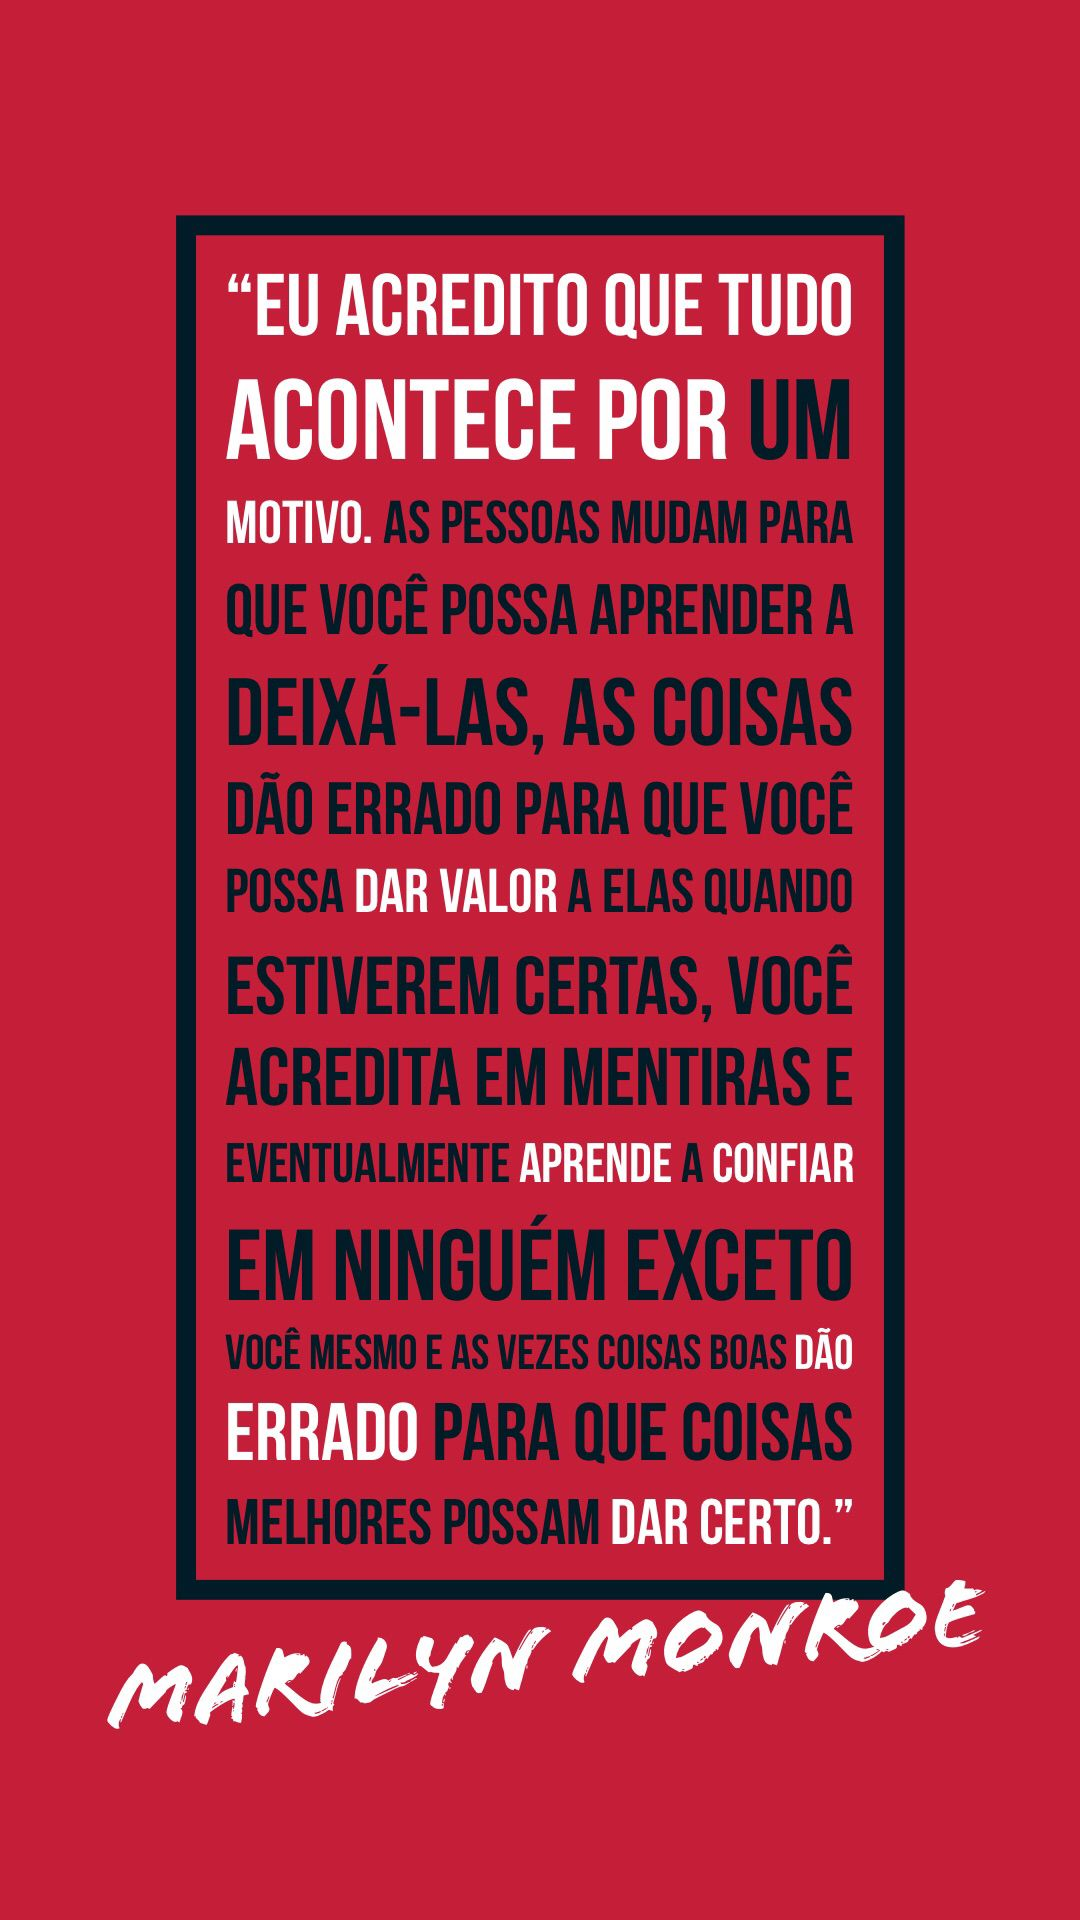 Frases Quote Marilynmonroe As Pessoas Mudam Frases Status Frases